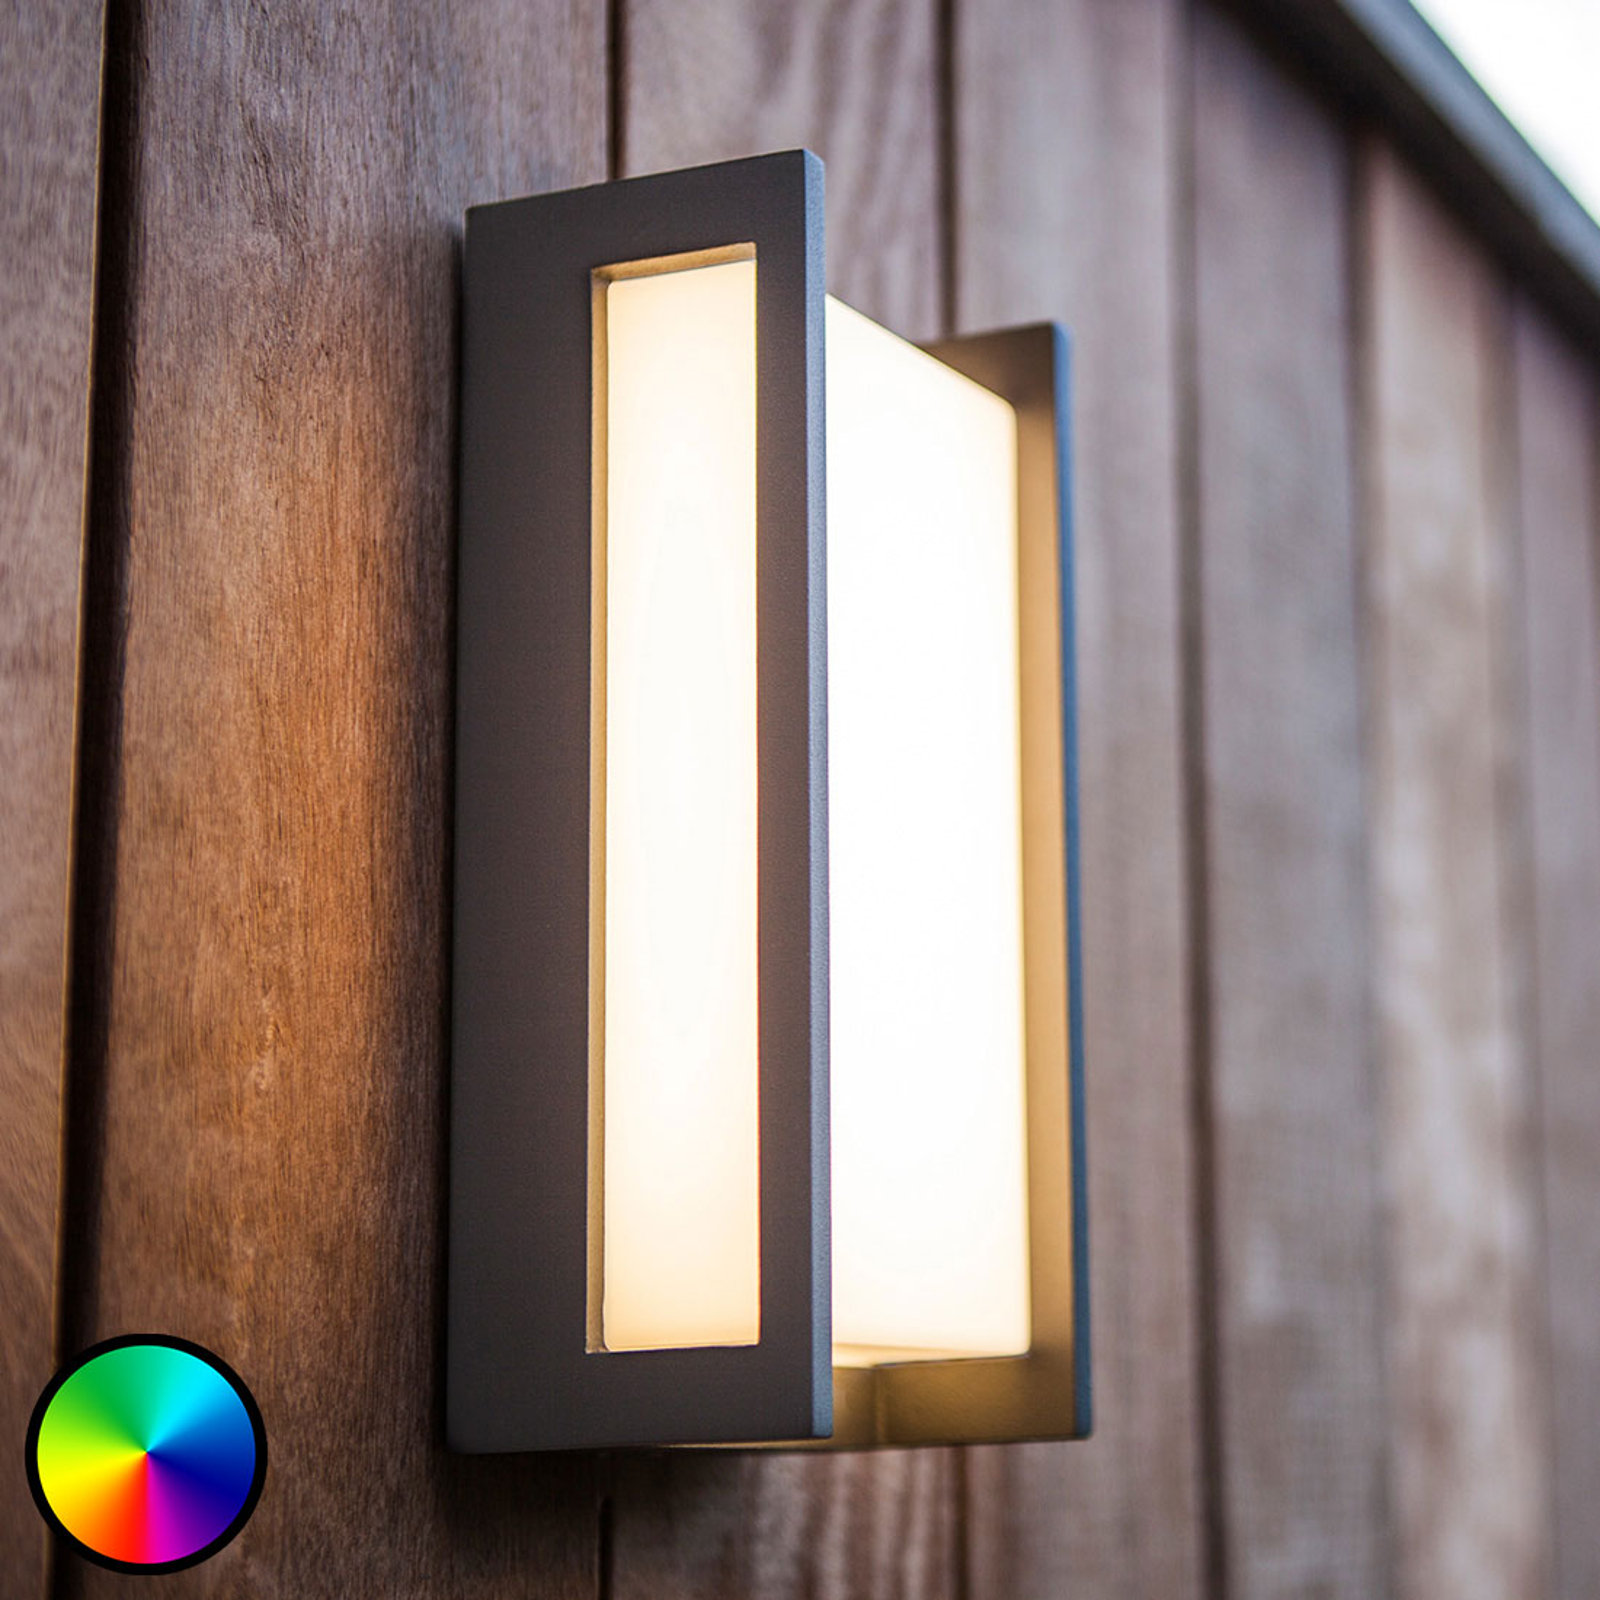 Qubo WiZ LED outdoor wall light_3006694_1